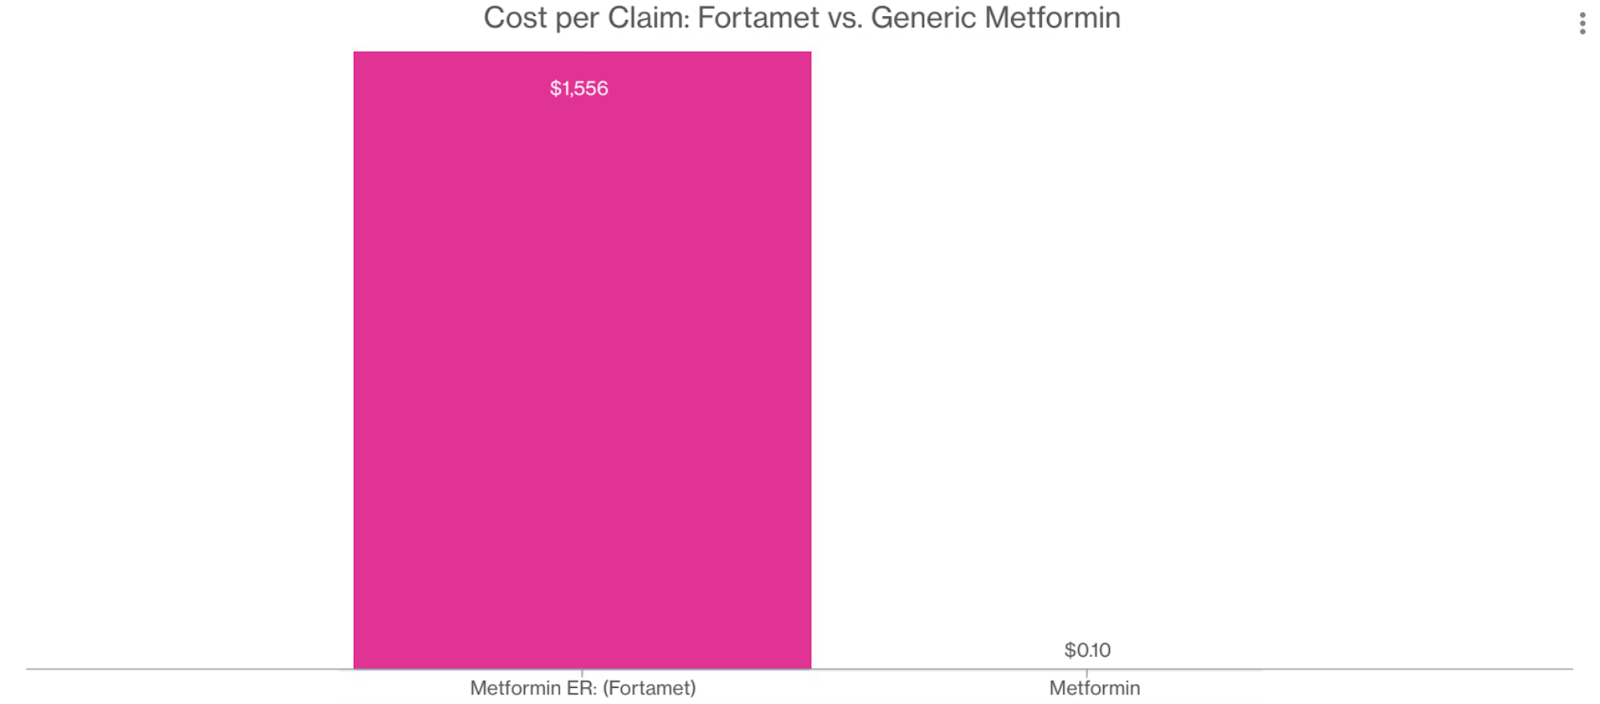 Chart from Artemis showing side-by-side costs for Fortamet vs. metformin drugs